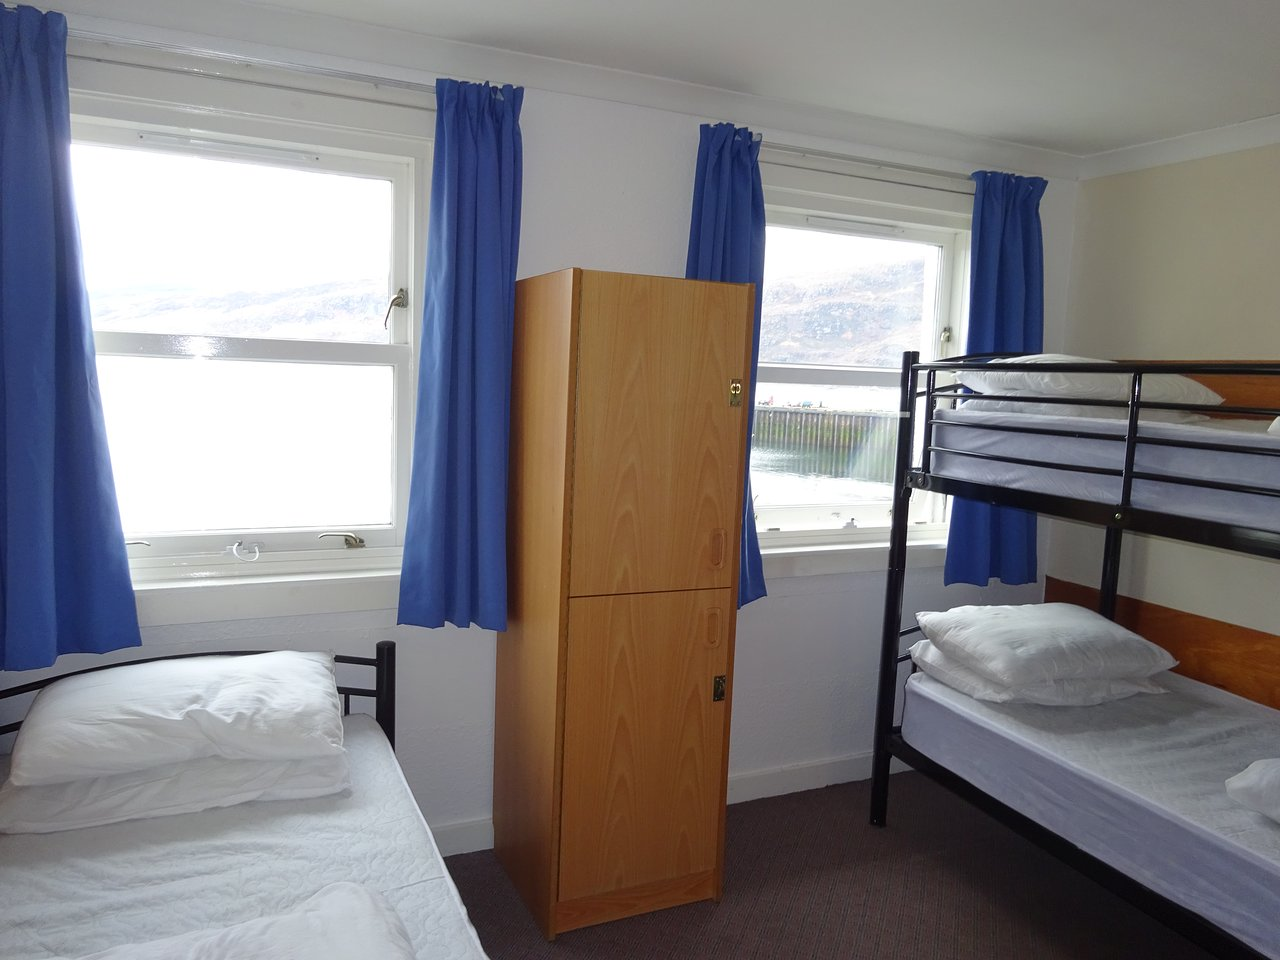 ULLAPOOL YOUTH HOSTEL Updated 2019 Prices & Reviews